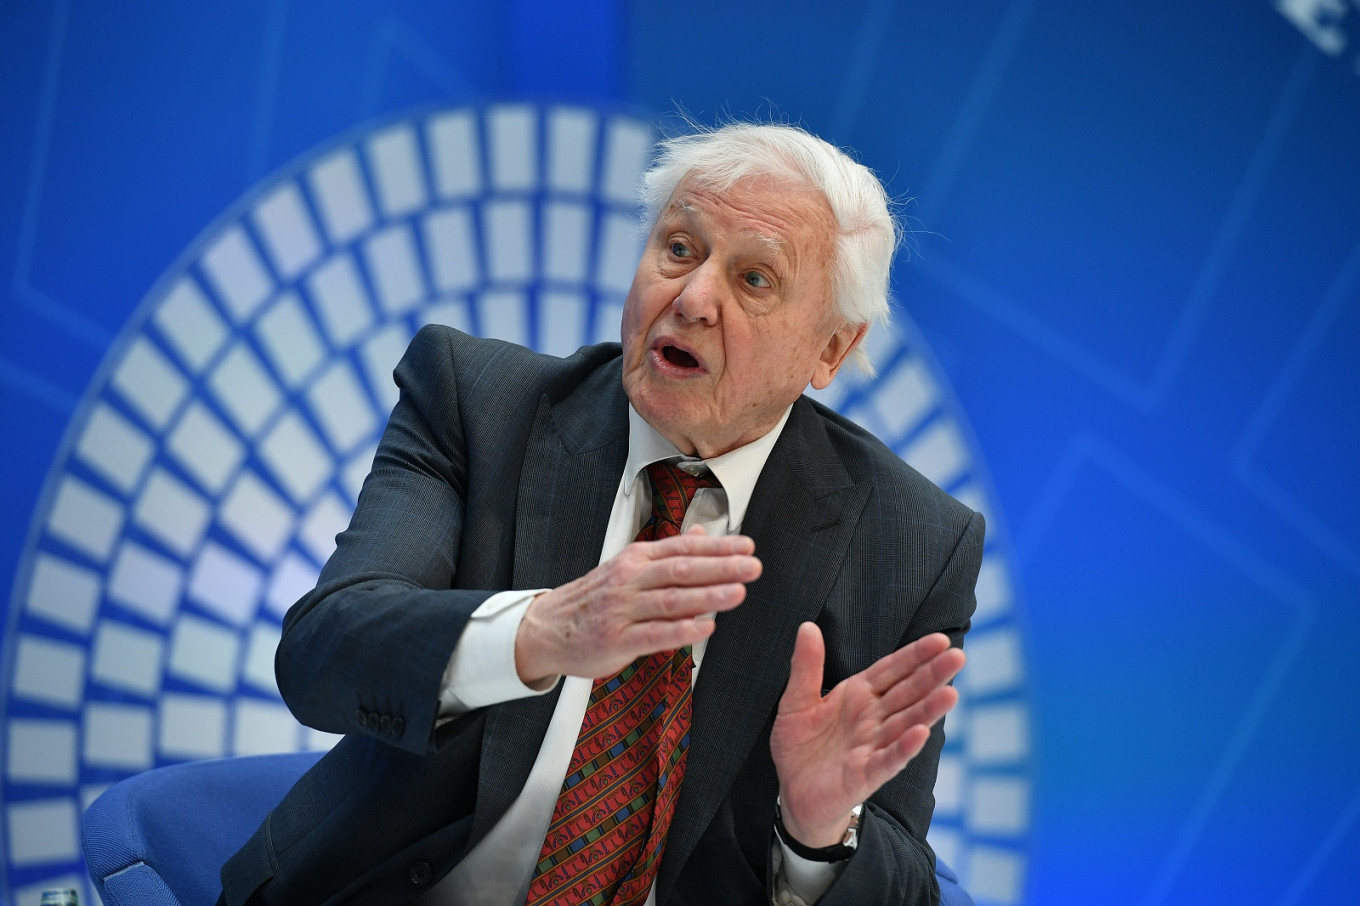 UK's Attenborough says 'moment of crisis' has come on climate